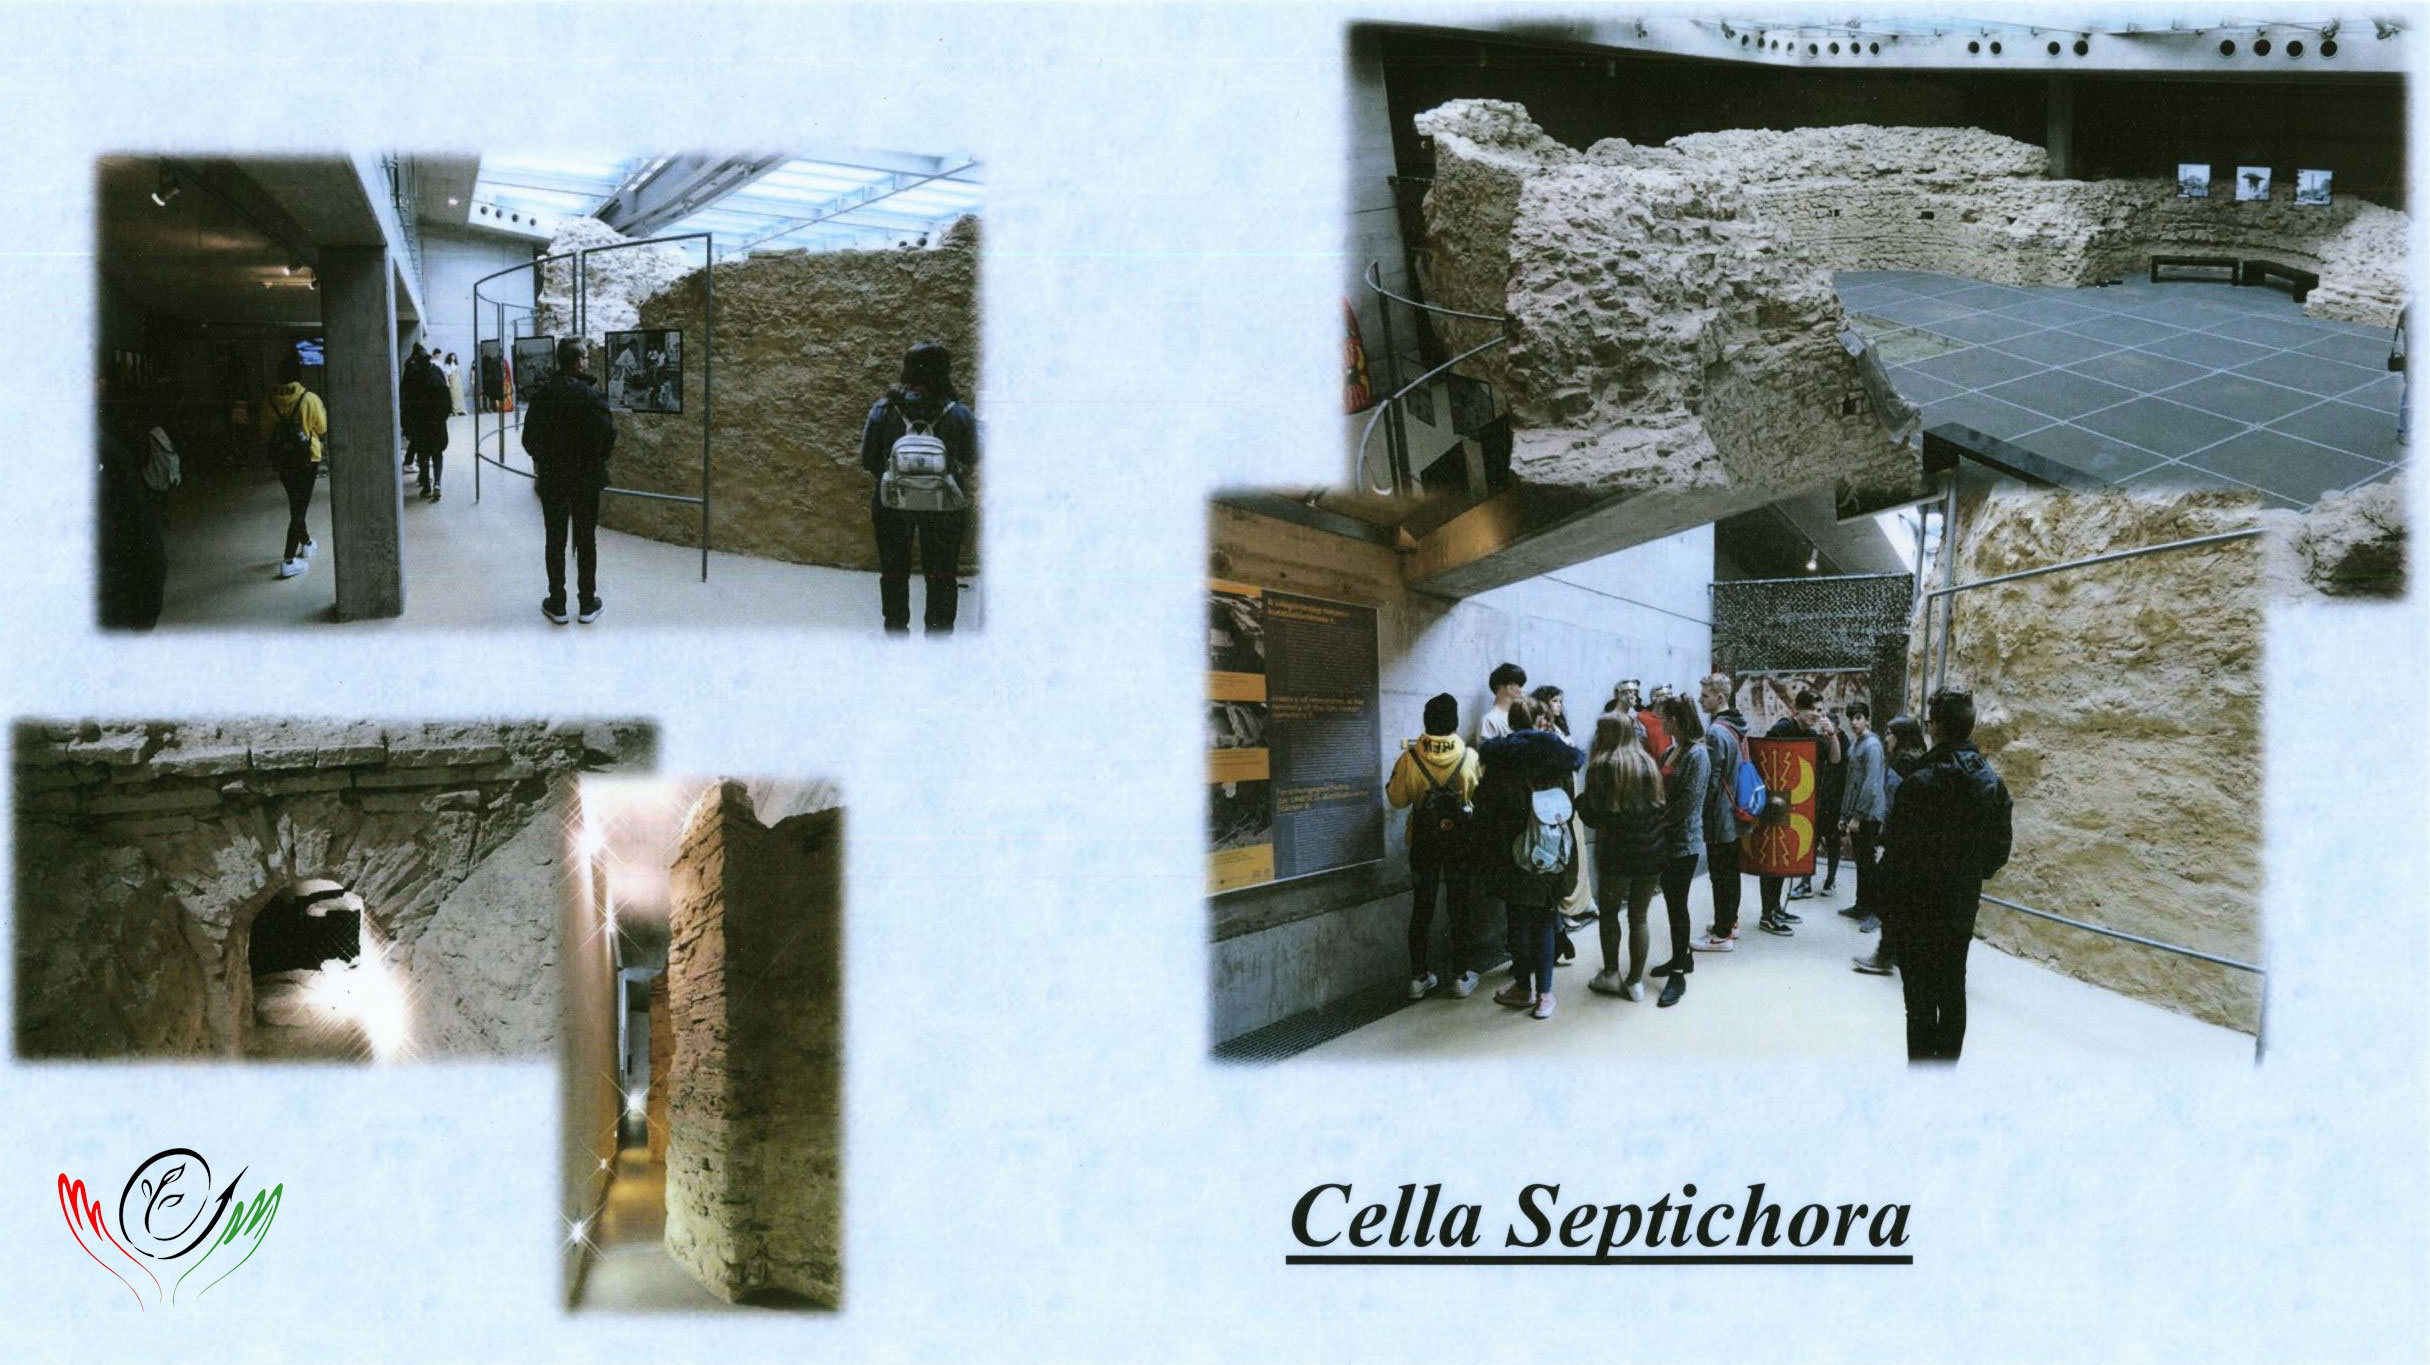 Cella Septichora